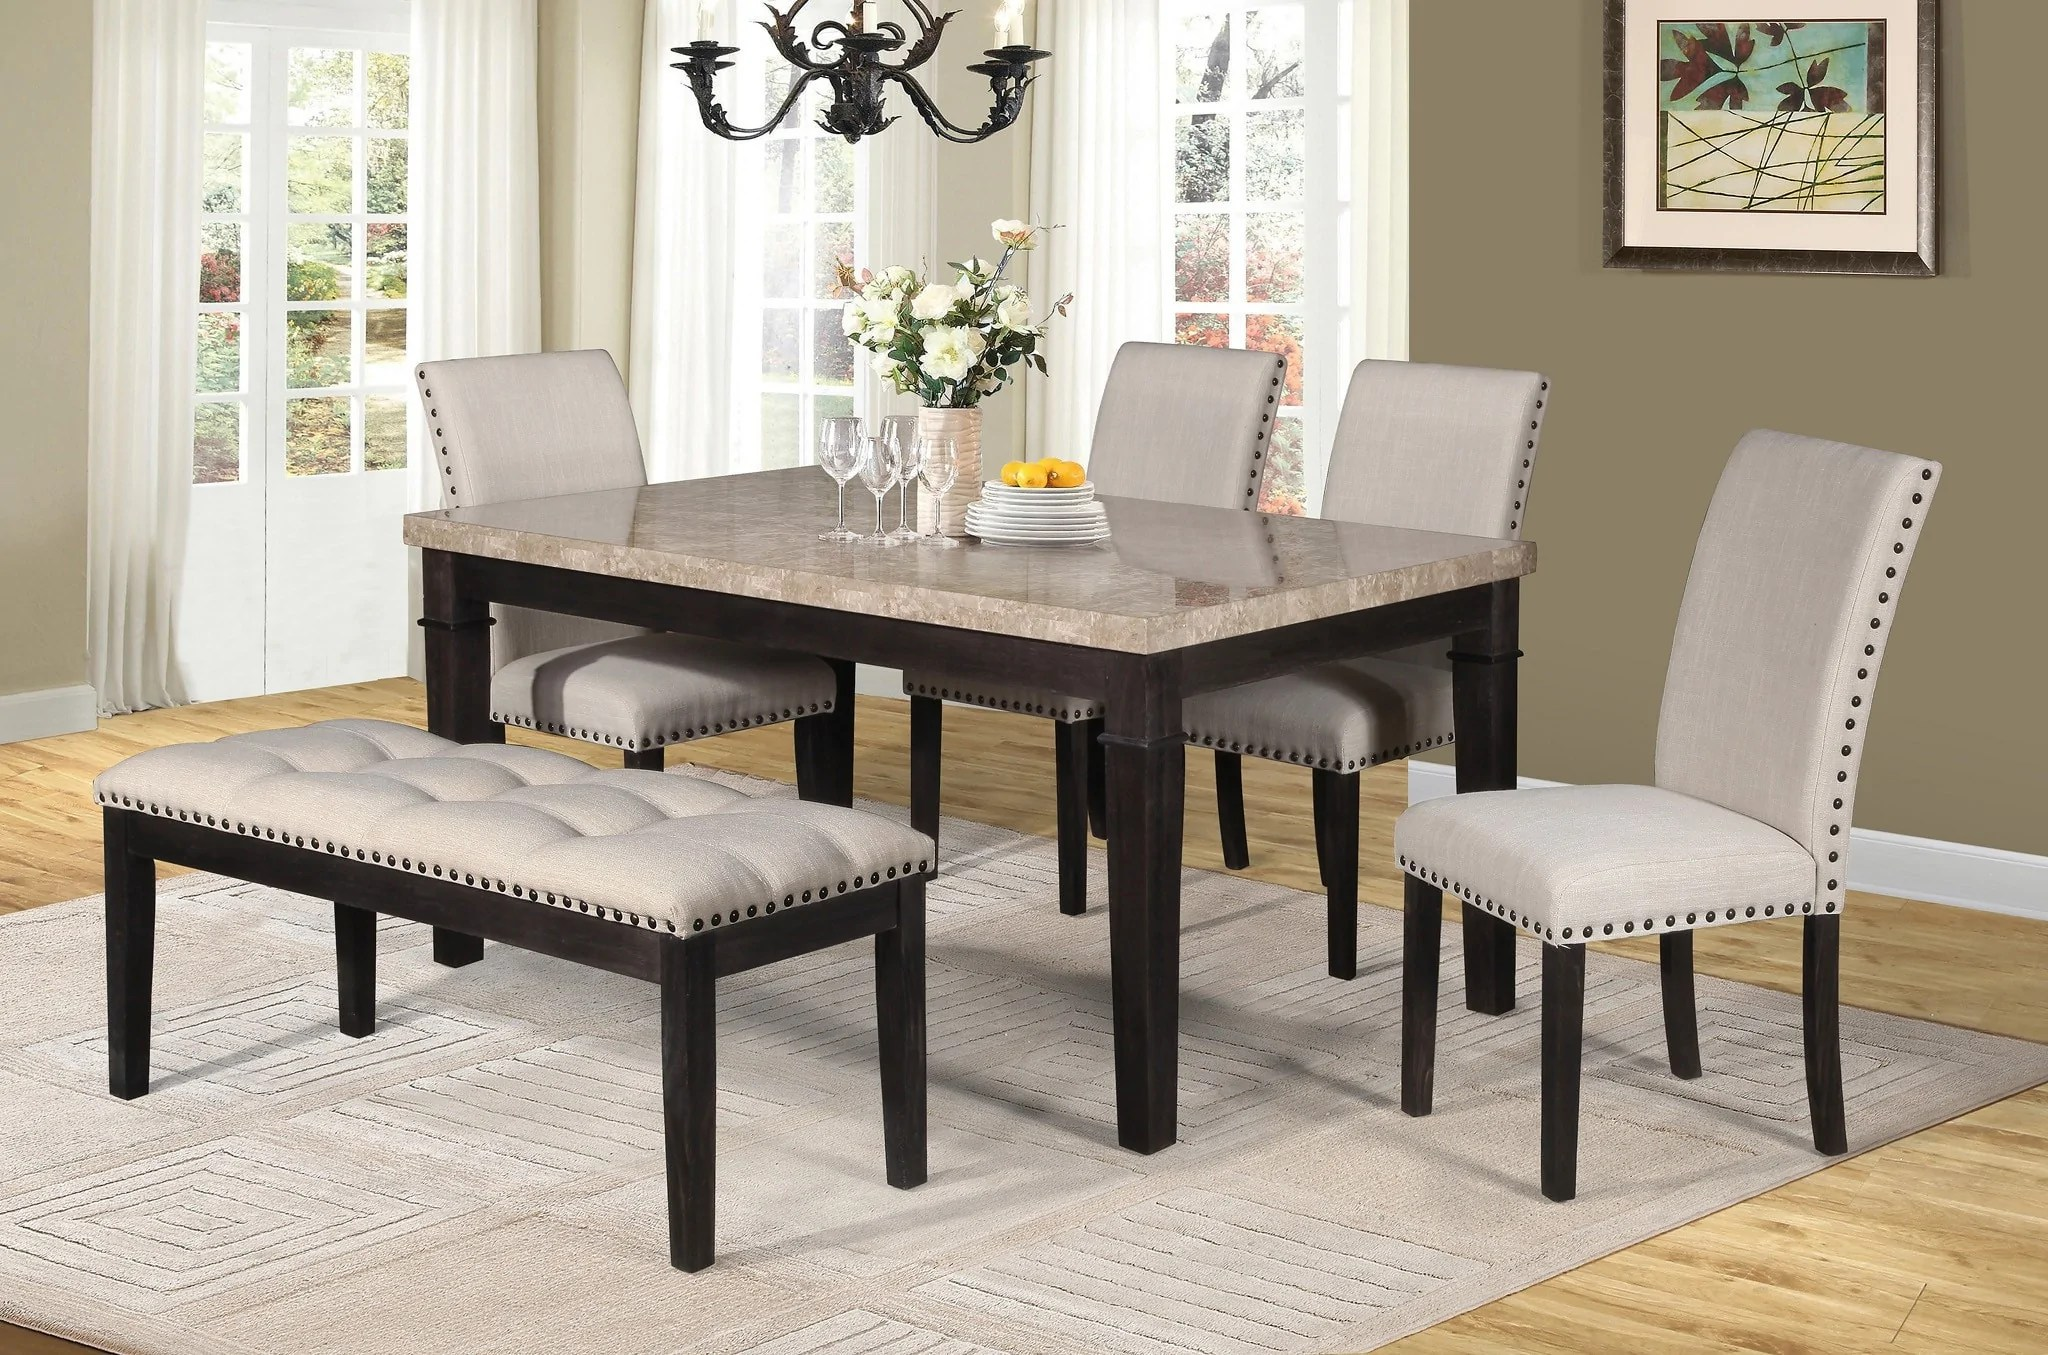 kitchen table set with bench sink kit sutton dining 4 chairs 6 pcs erica furnlander